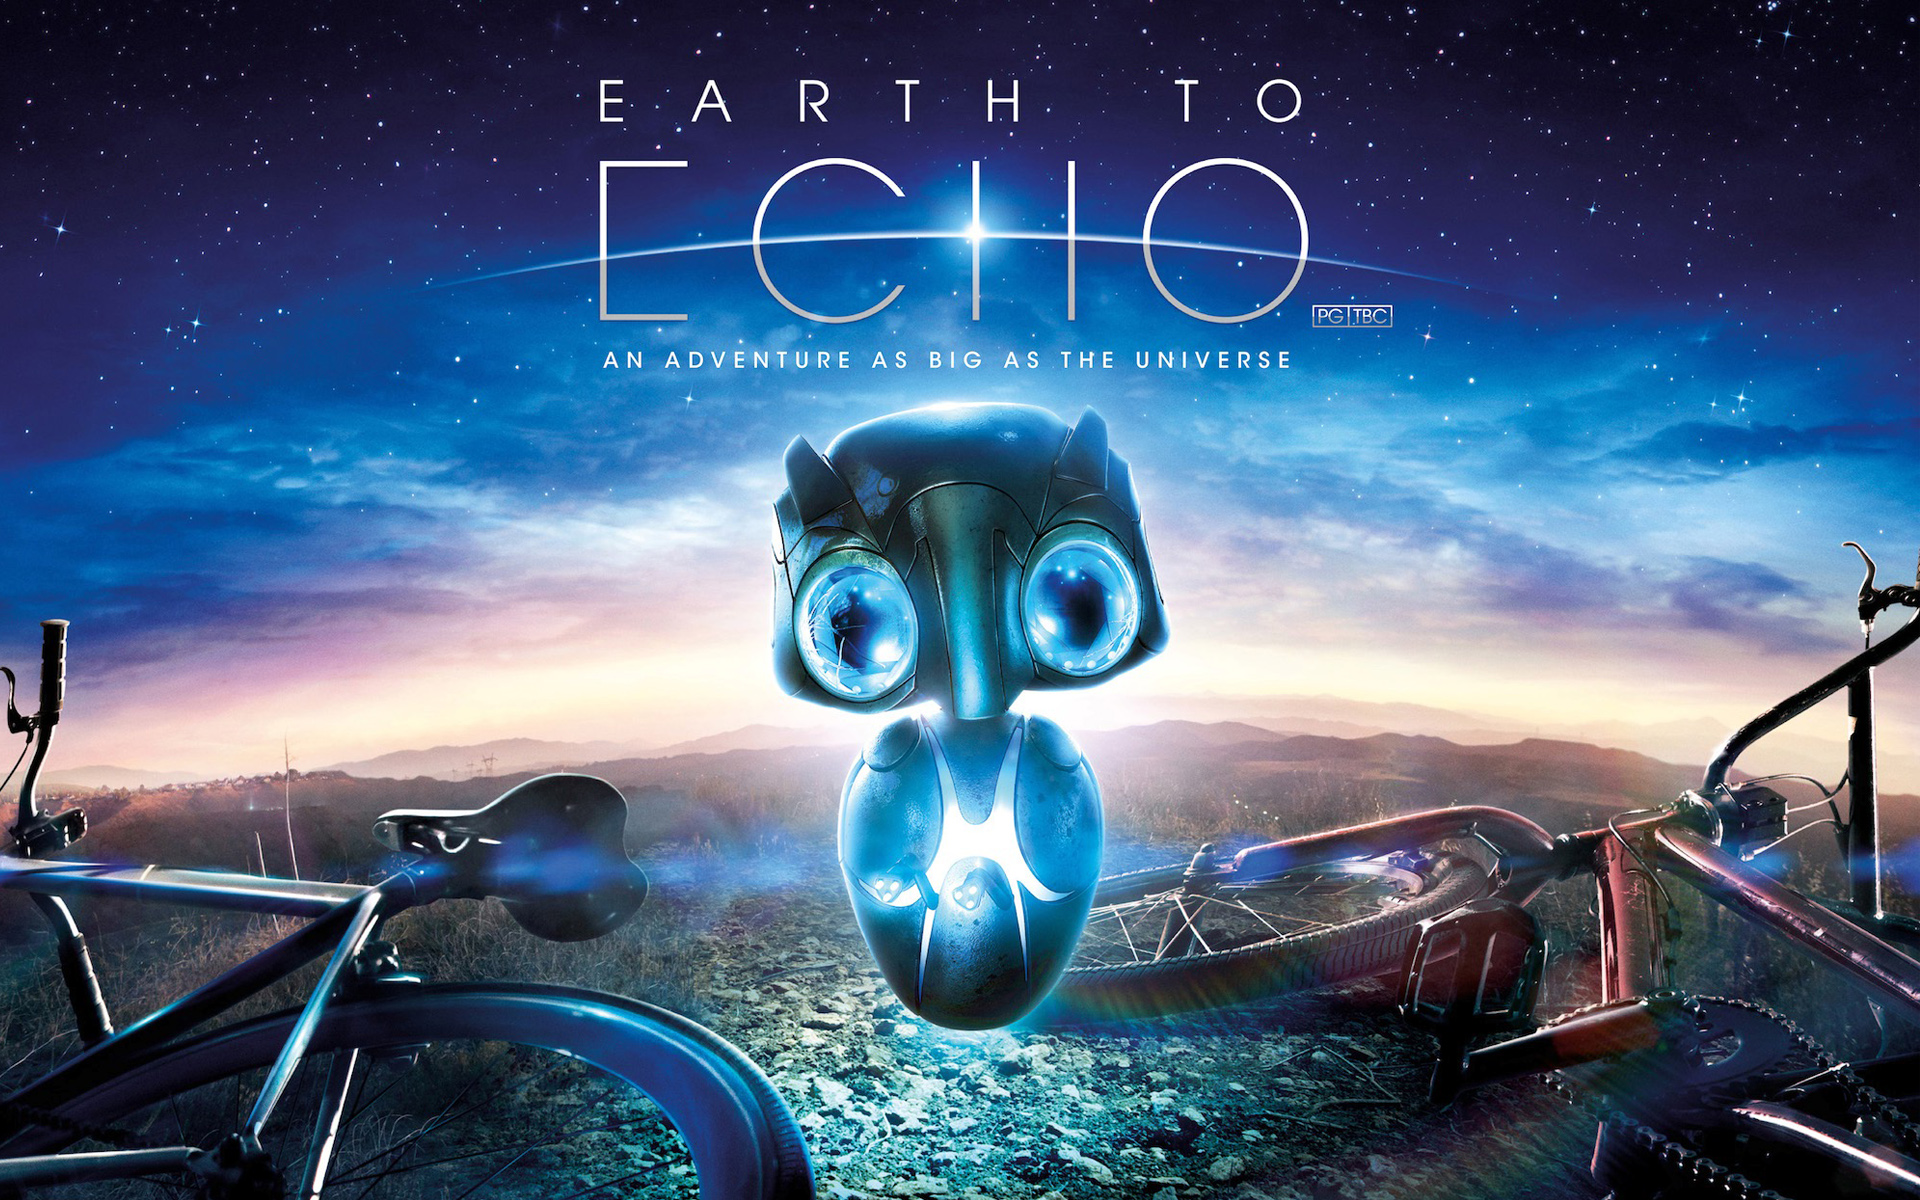 Earth to Echo Movie 1118.21 Kb